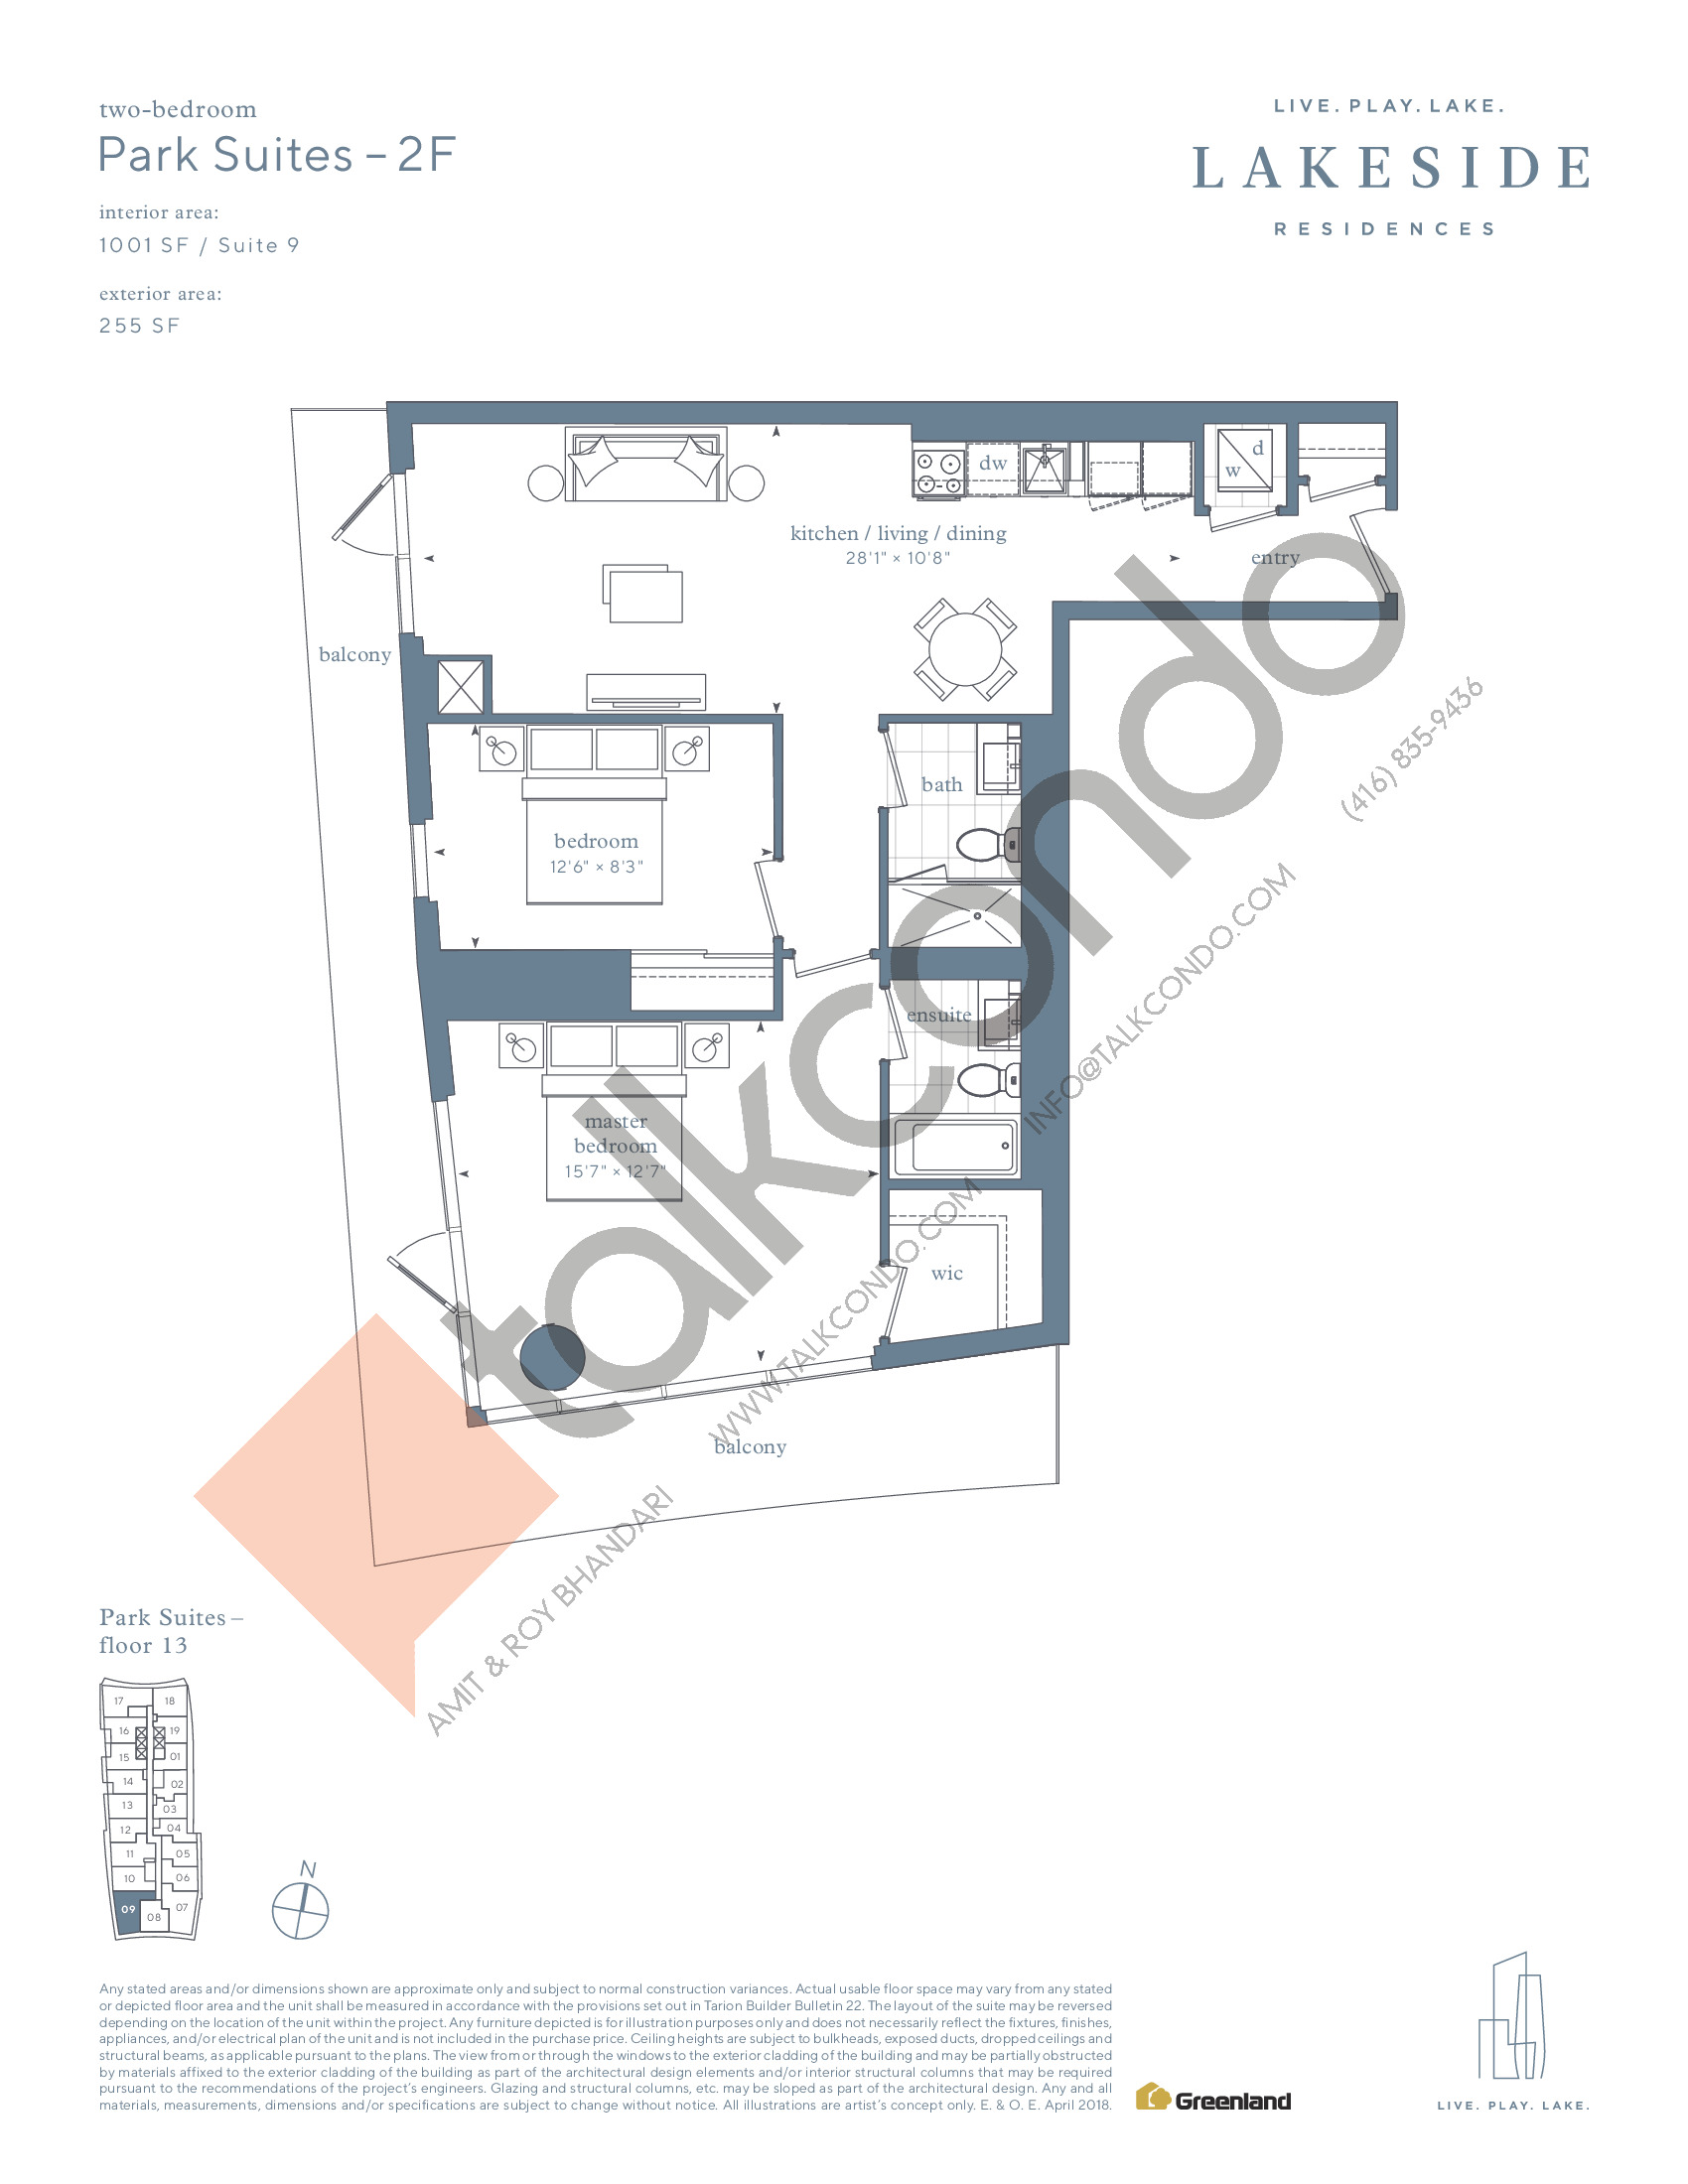 Park Suites - 2F Floor Plan at Lakeside Residences - 1001 sq.ft